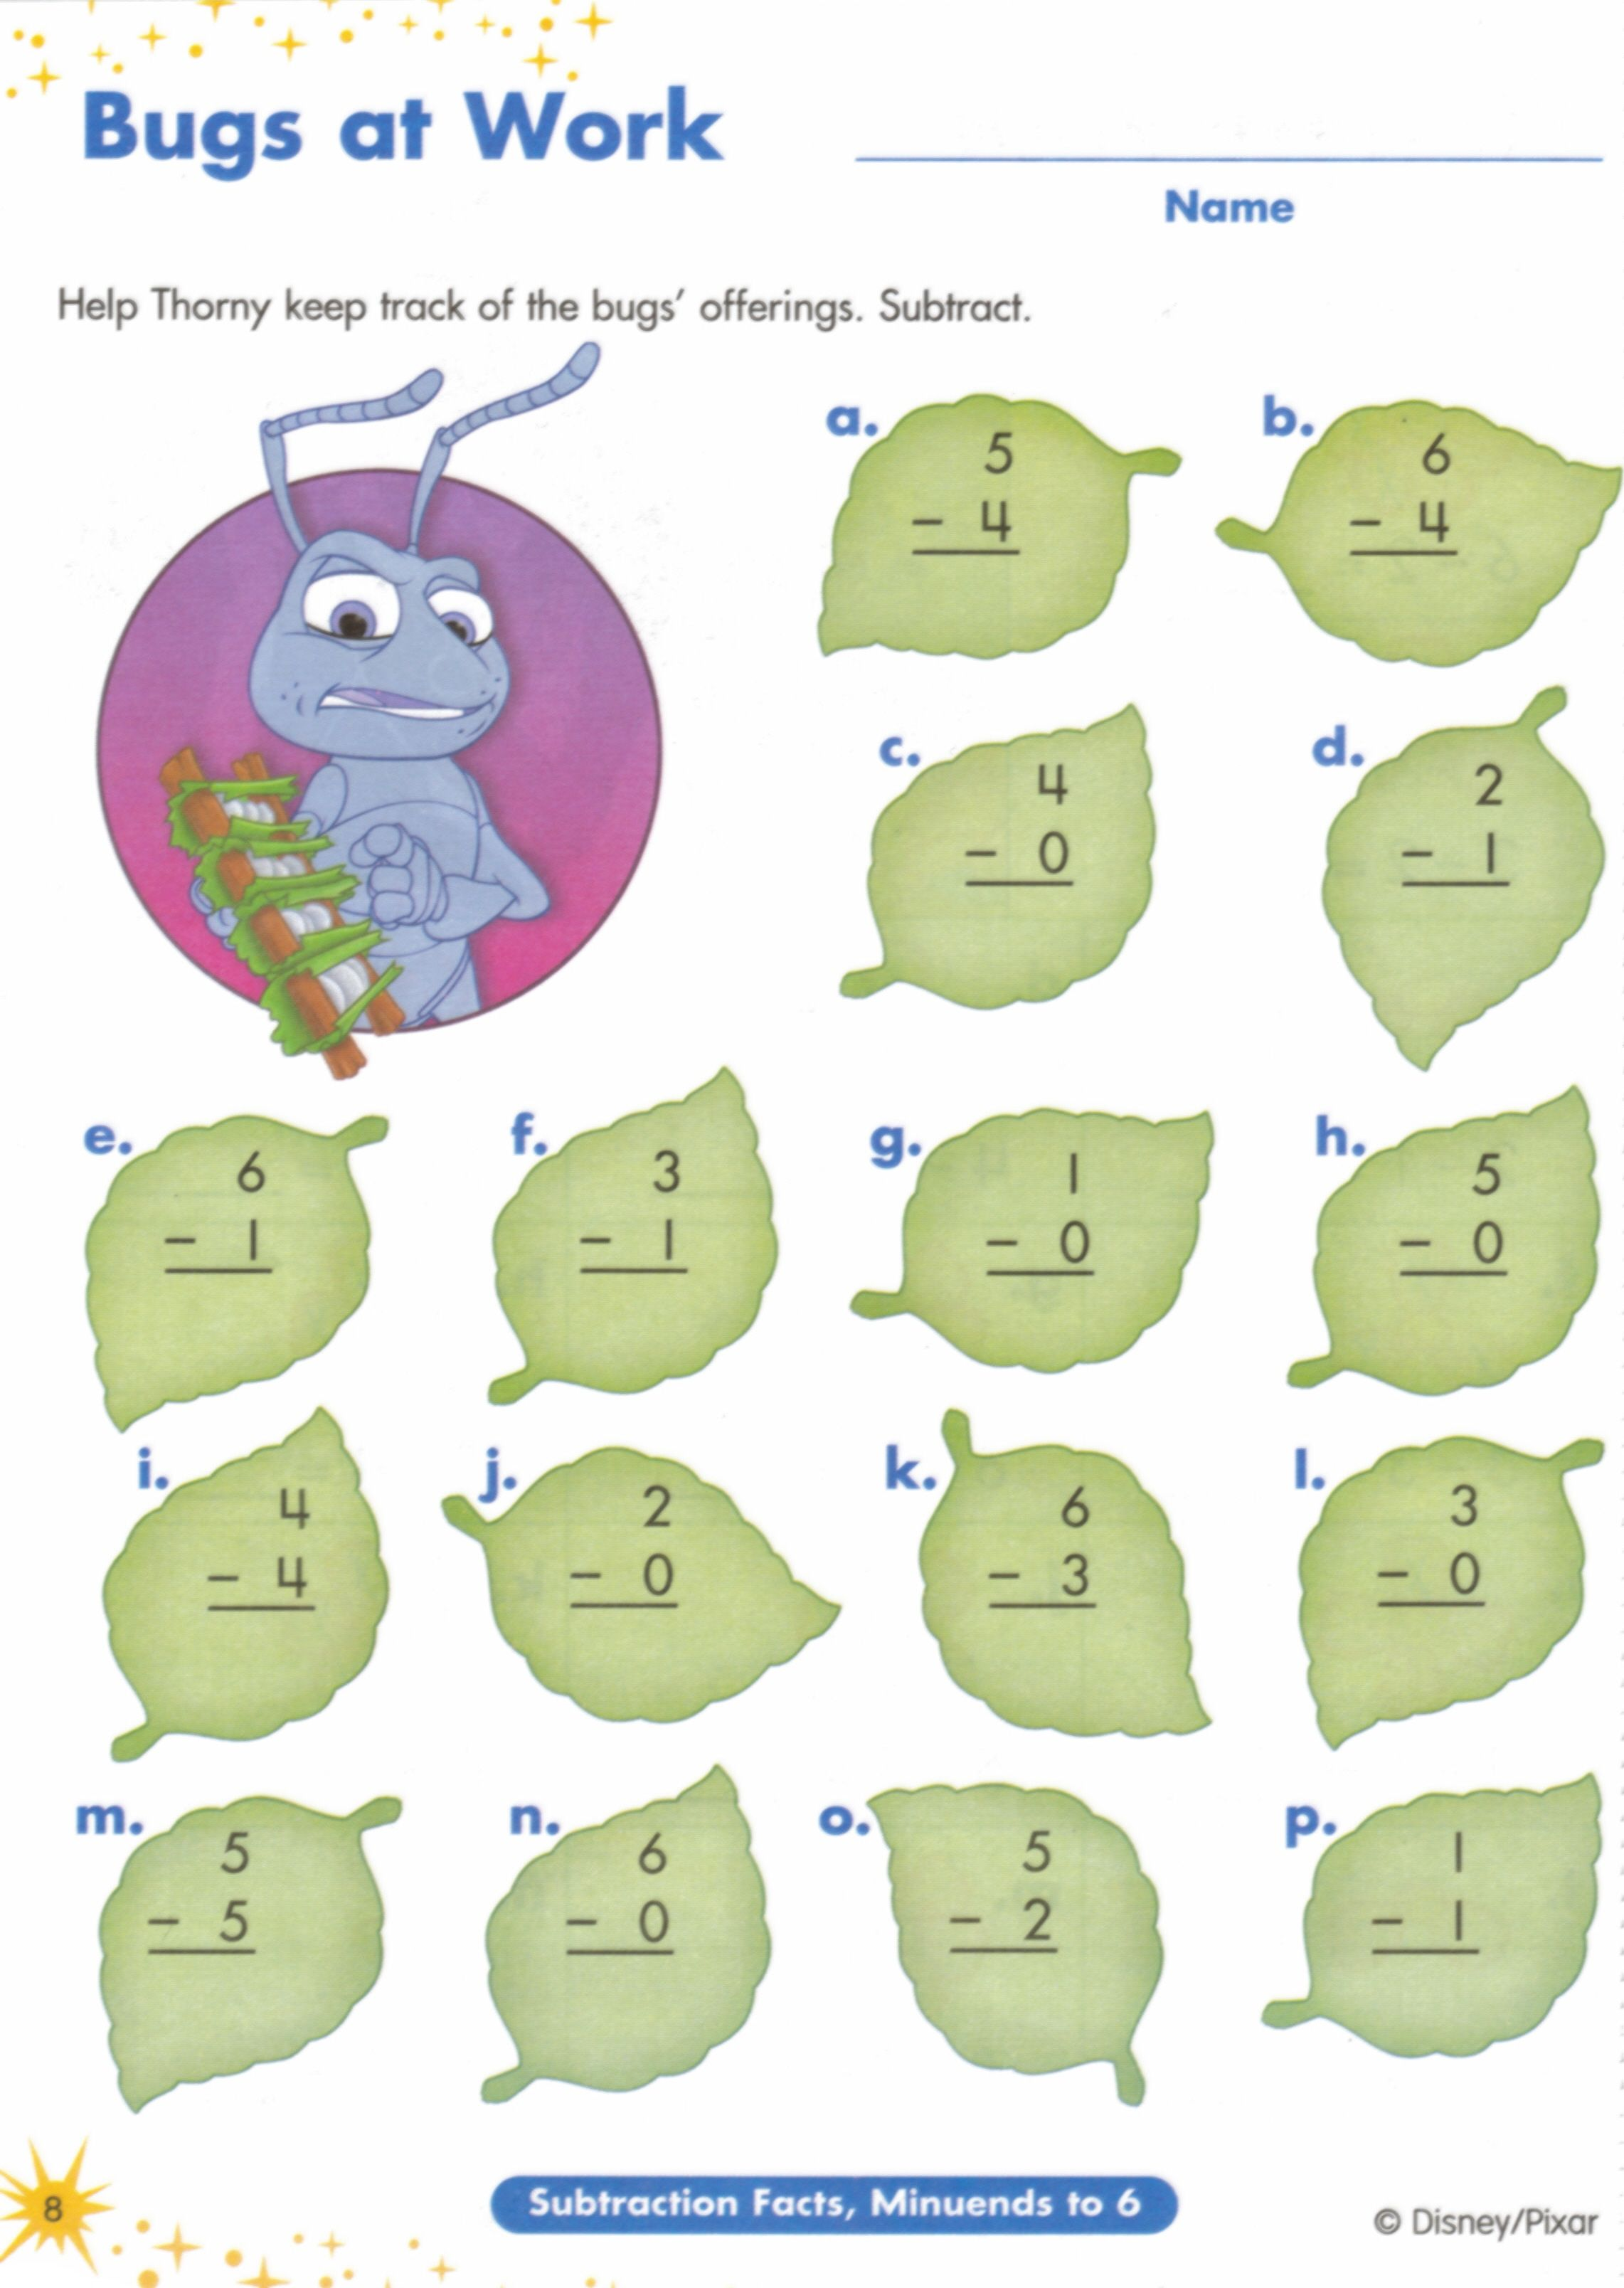 Proatmealus  Outstanding  Images About Worksheets On Pinterest  Fun Facts For Kids  With Lovable  Images About Worksheets On Pinterest  Fun Facts For Kids Earth Day Worksheets And Jungles With Awesome Trace Shapes Worksheets Also Comprehension Worksheets Year  In Addition Spanish Verb Practice Worksheets And Year  Maths Worksheets Free As Well As Super Teachers Worksheets Math Additionally Sets And Venn Diagrams Worksheets From Pinterestcom With Proatmealus  Lovable  Images About Worksheets On Pinterest  Fun Facts For Kids  With Awesome  Images About Worksheets On Pinterest  Fun Facts For Kids Earth Day Worksheets And Jungles And Outstanding Trace Shapes Worksheets Also Comprehension Worksheets Year  In Addition Spanish Verb Practice Worksheets From Pinterestcom